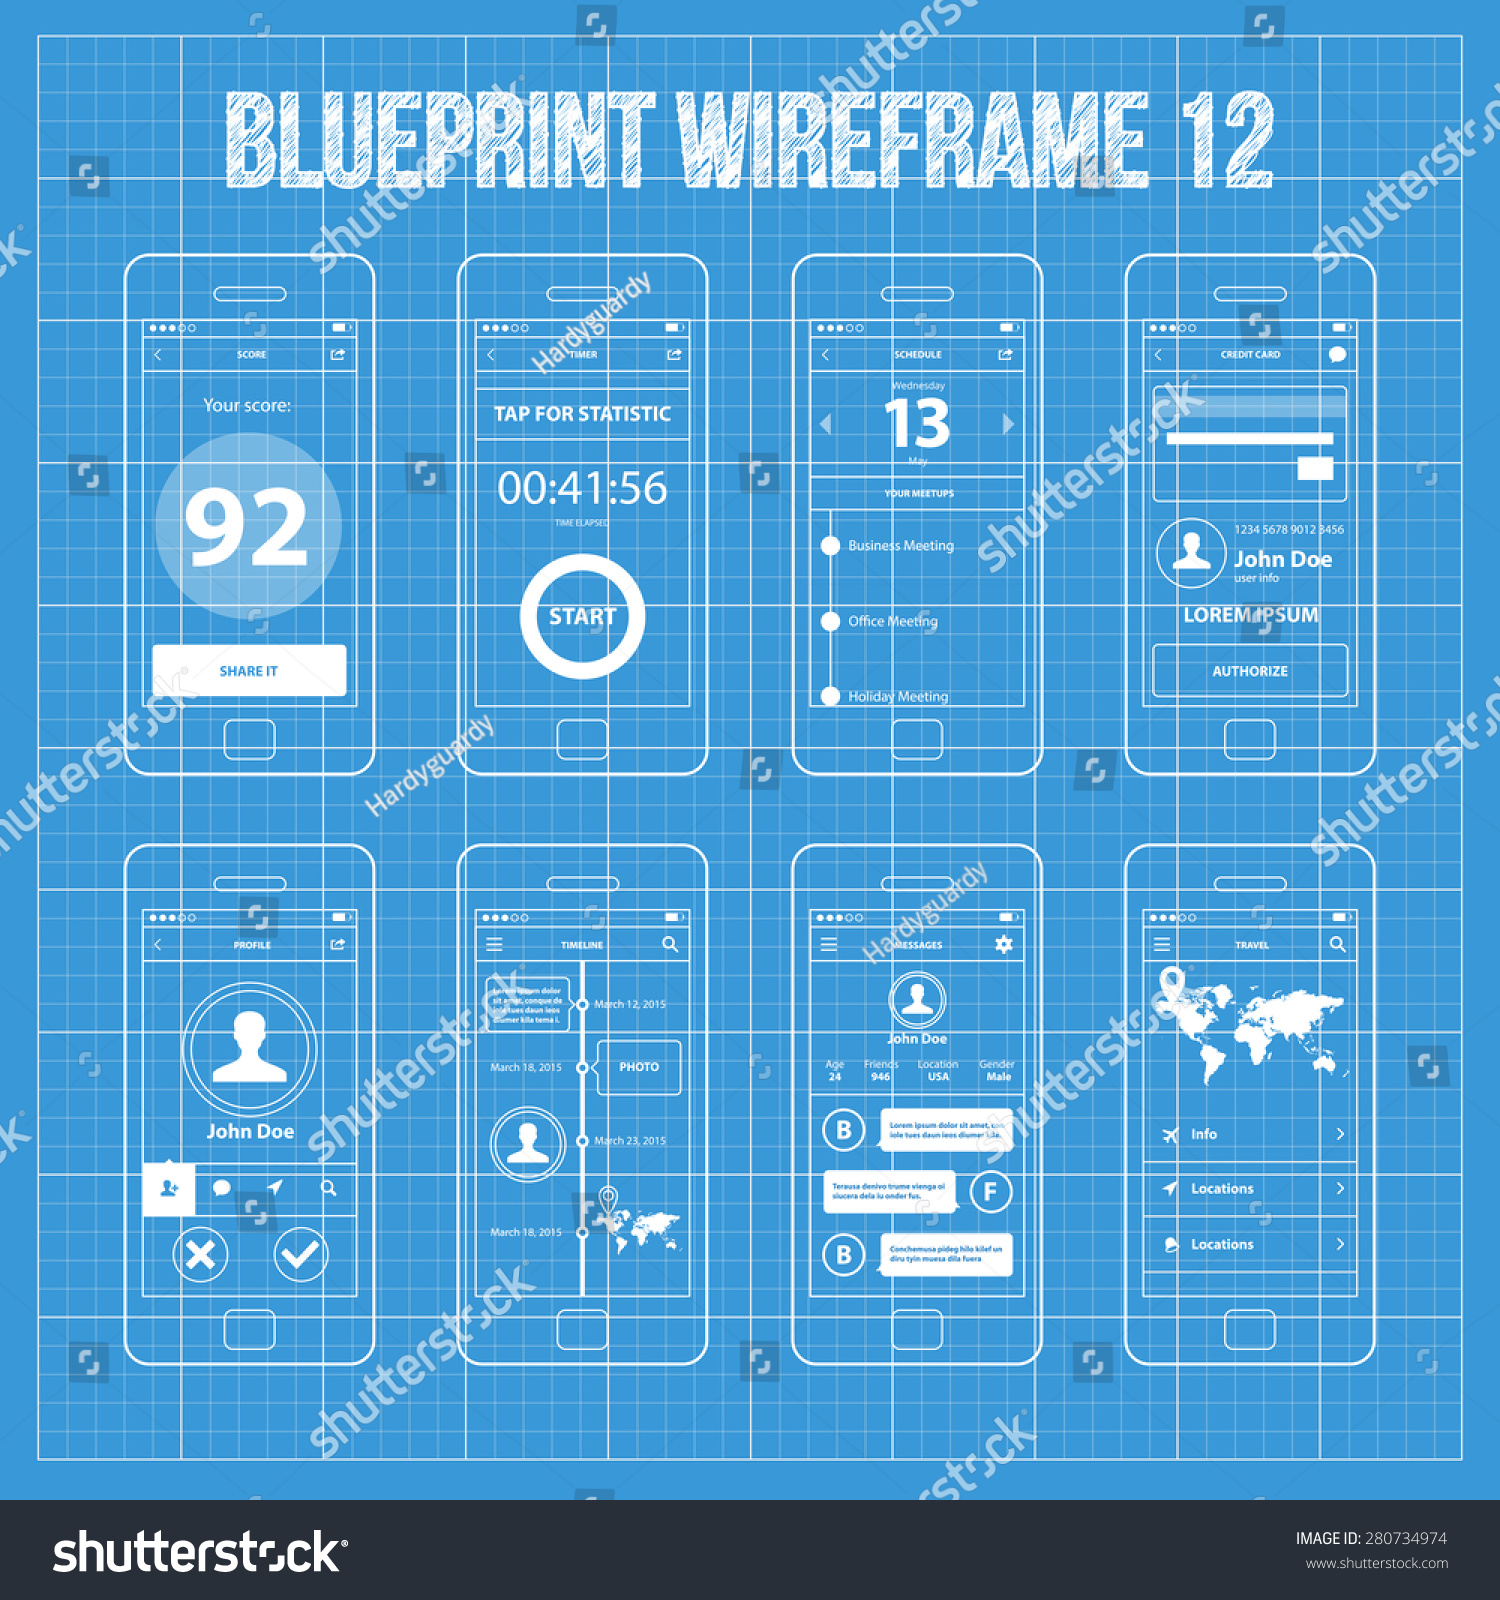 Mobile app wireframe blueprint ui kit stock vector 280734974 mobile app wireframe blueprint ui kit 12 score screen timer screen schedule screen malvernweather Image collections